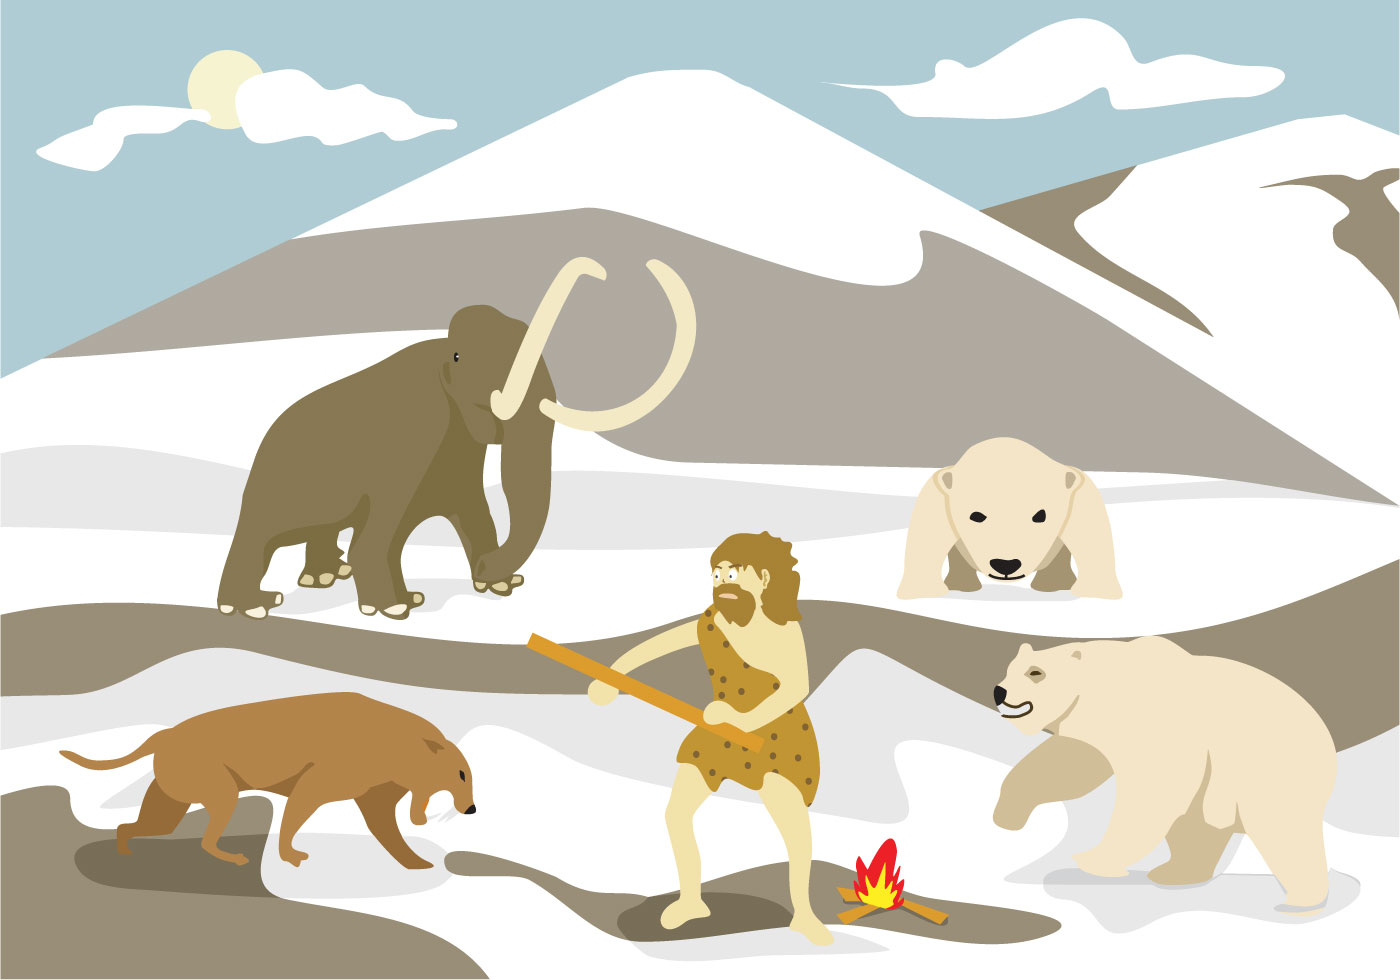 Ice Age Illustration Vector - Download Free Vector Art, Stock ...